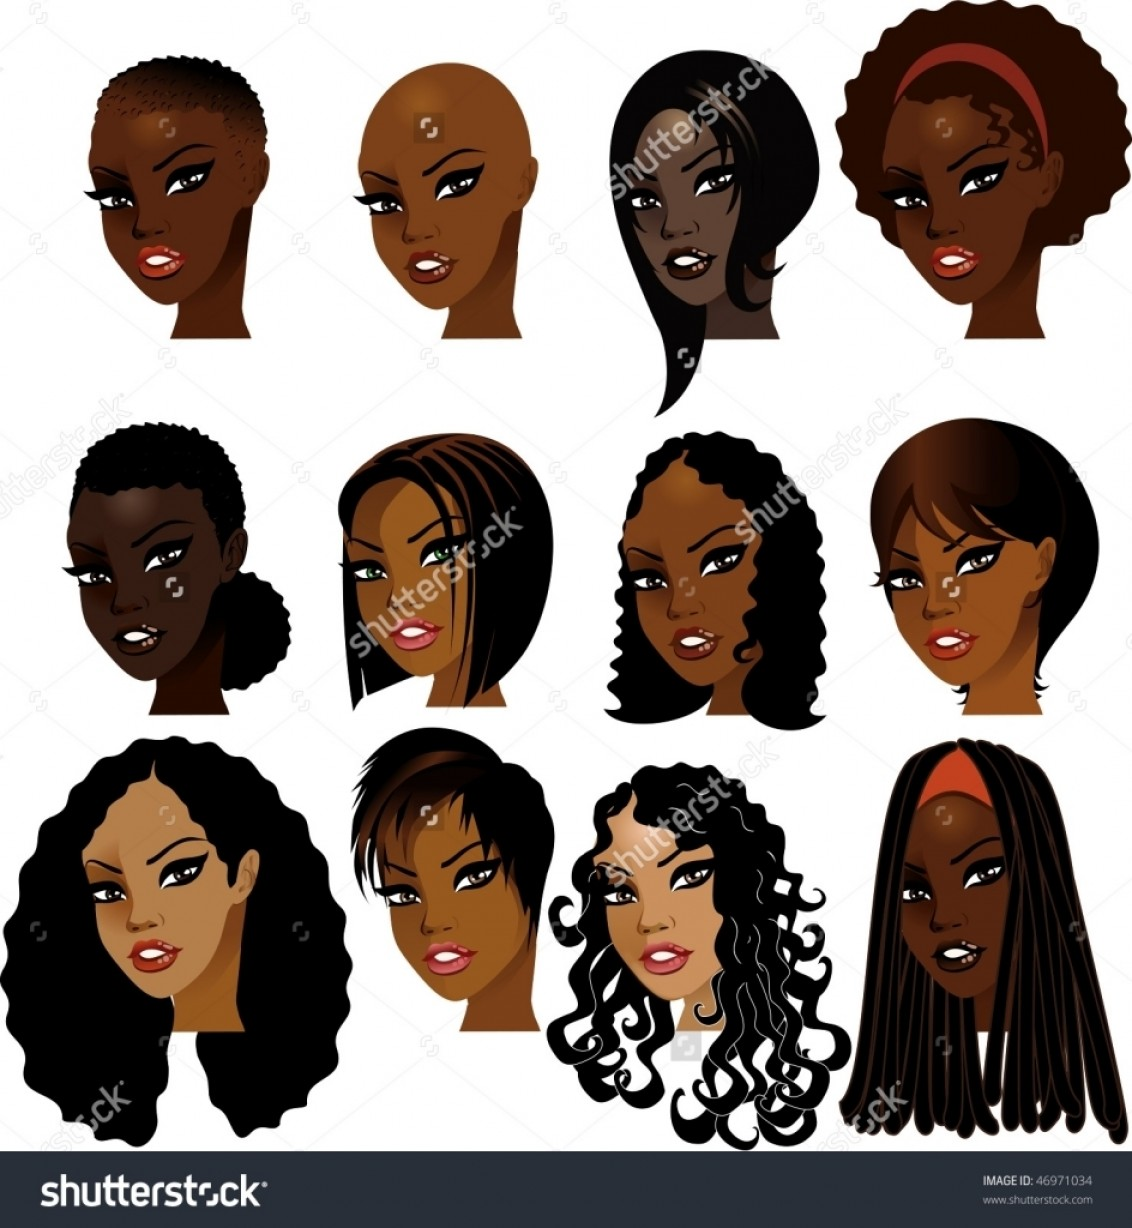 Short Men's Hair Vector: Types Of Black People Hair Vector Illustration Of Black Women Faces Great For Avatars